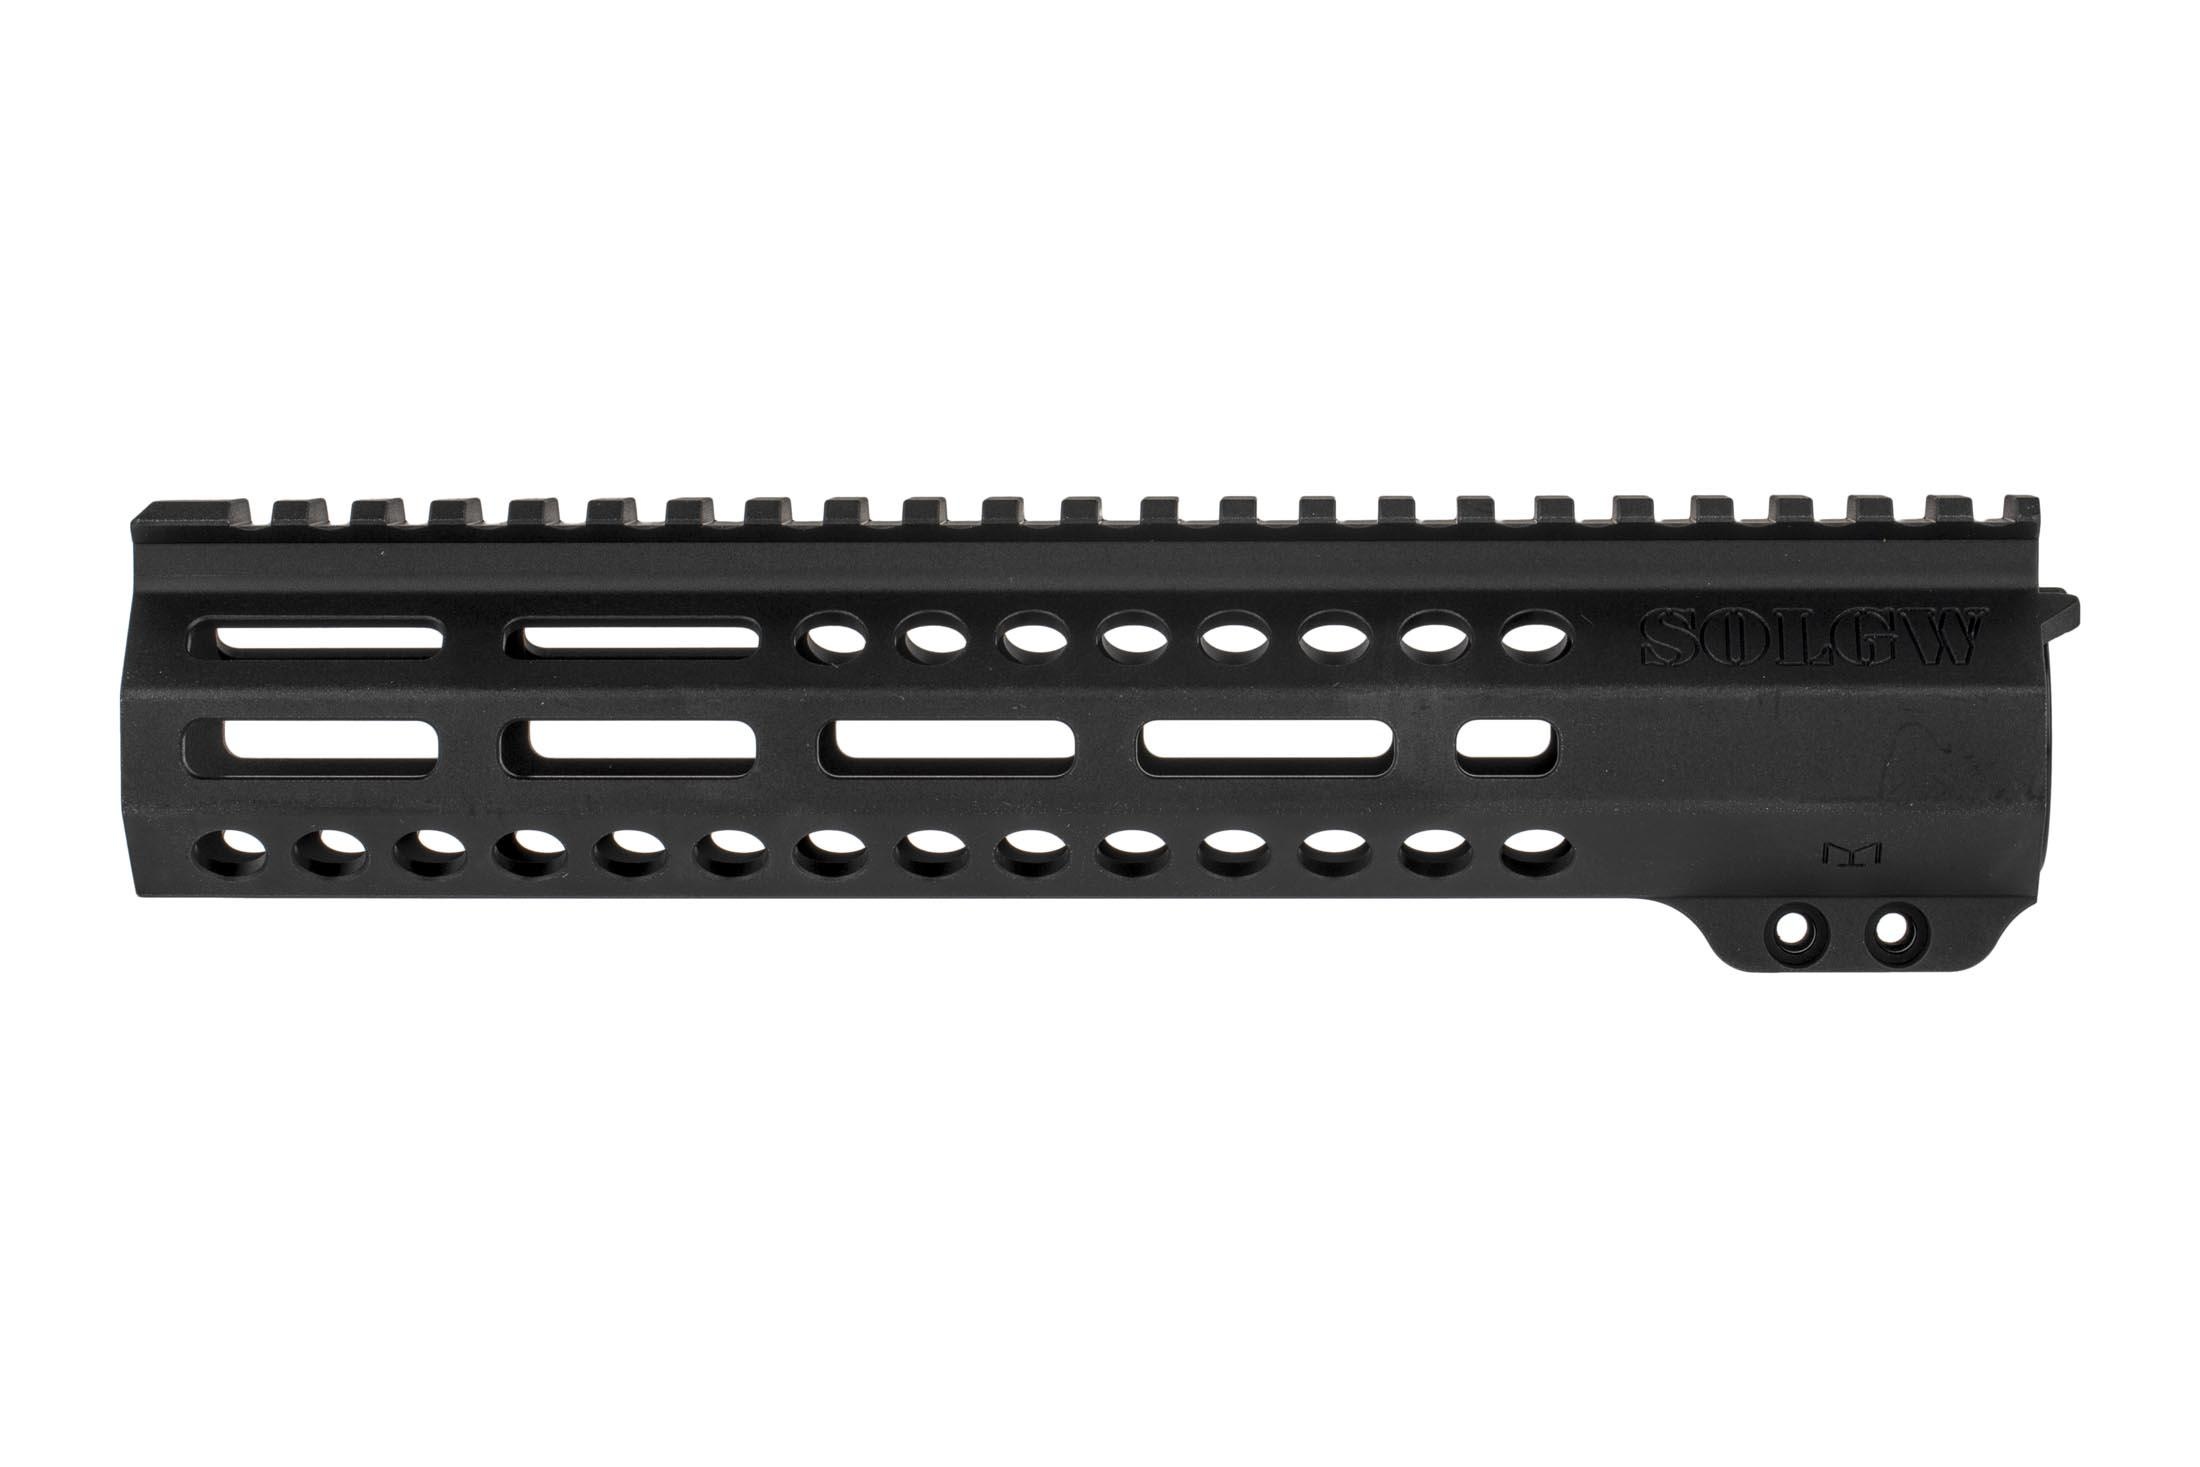 SOLGW EXO 2 9.5in free float AR15 handguard has two 45-degree M-LOK slots for lights and similar offset accessories